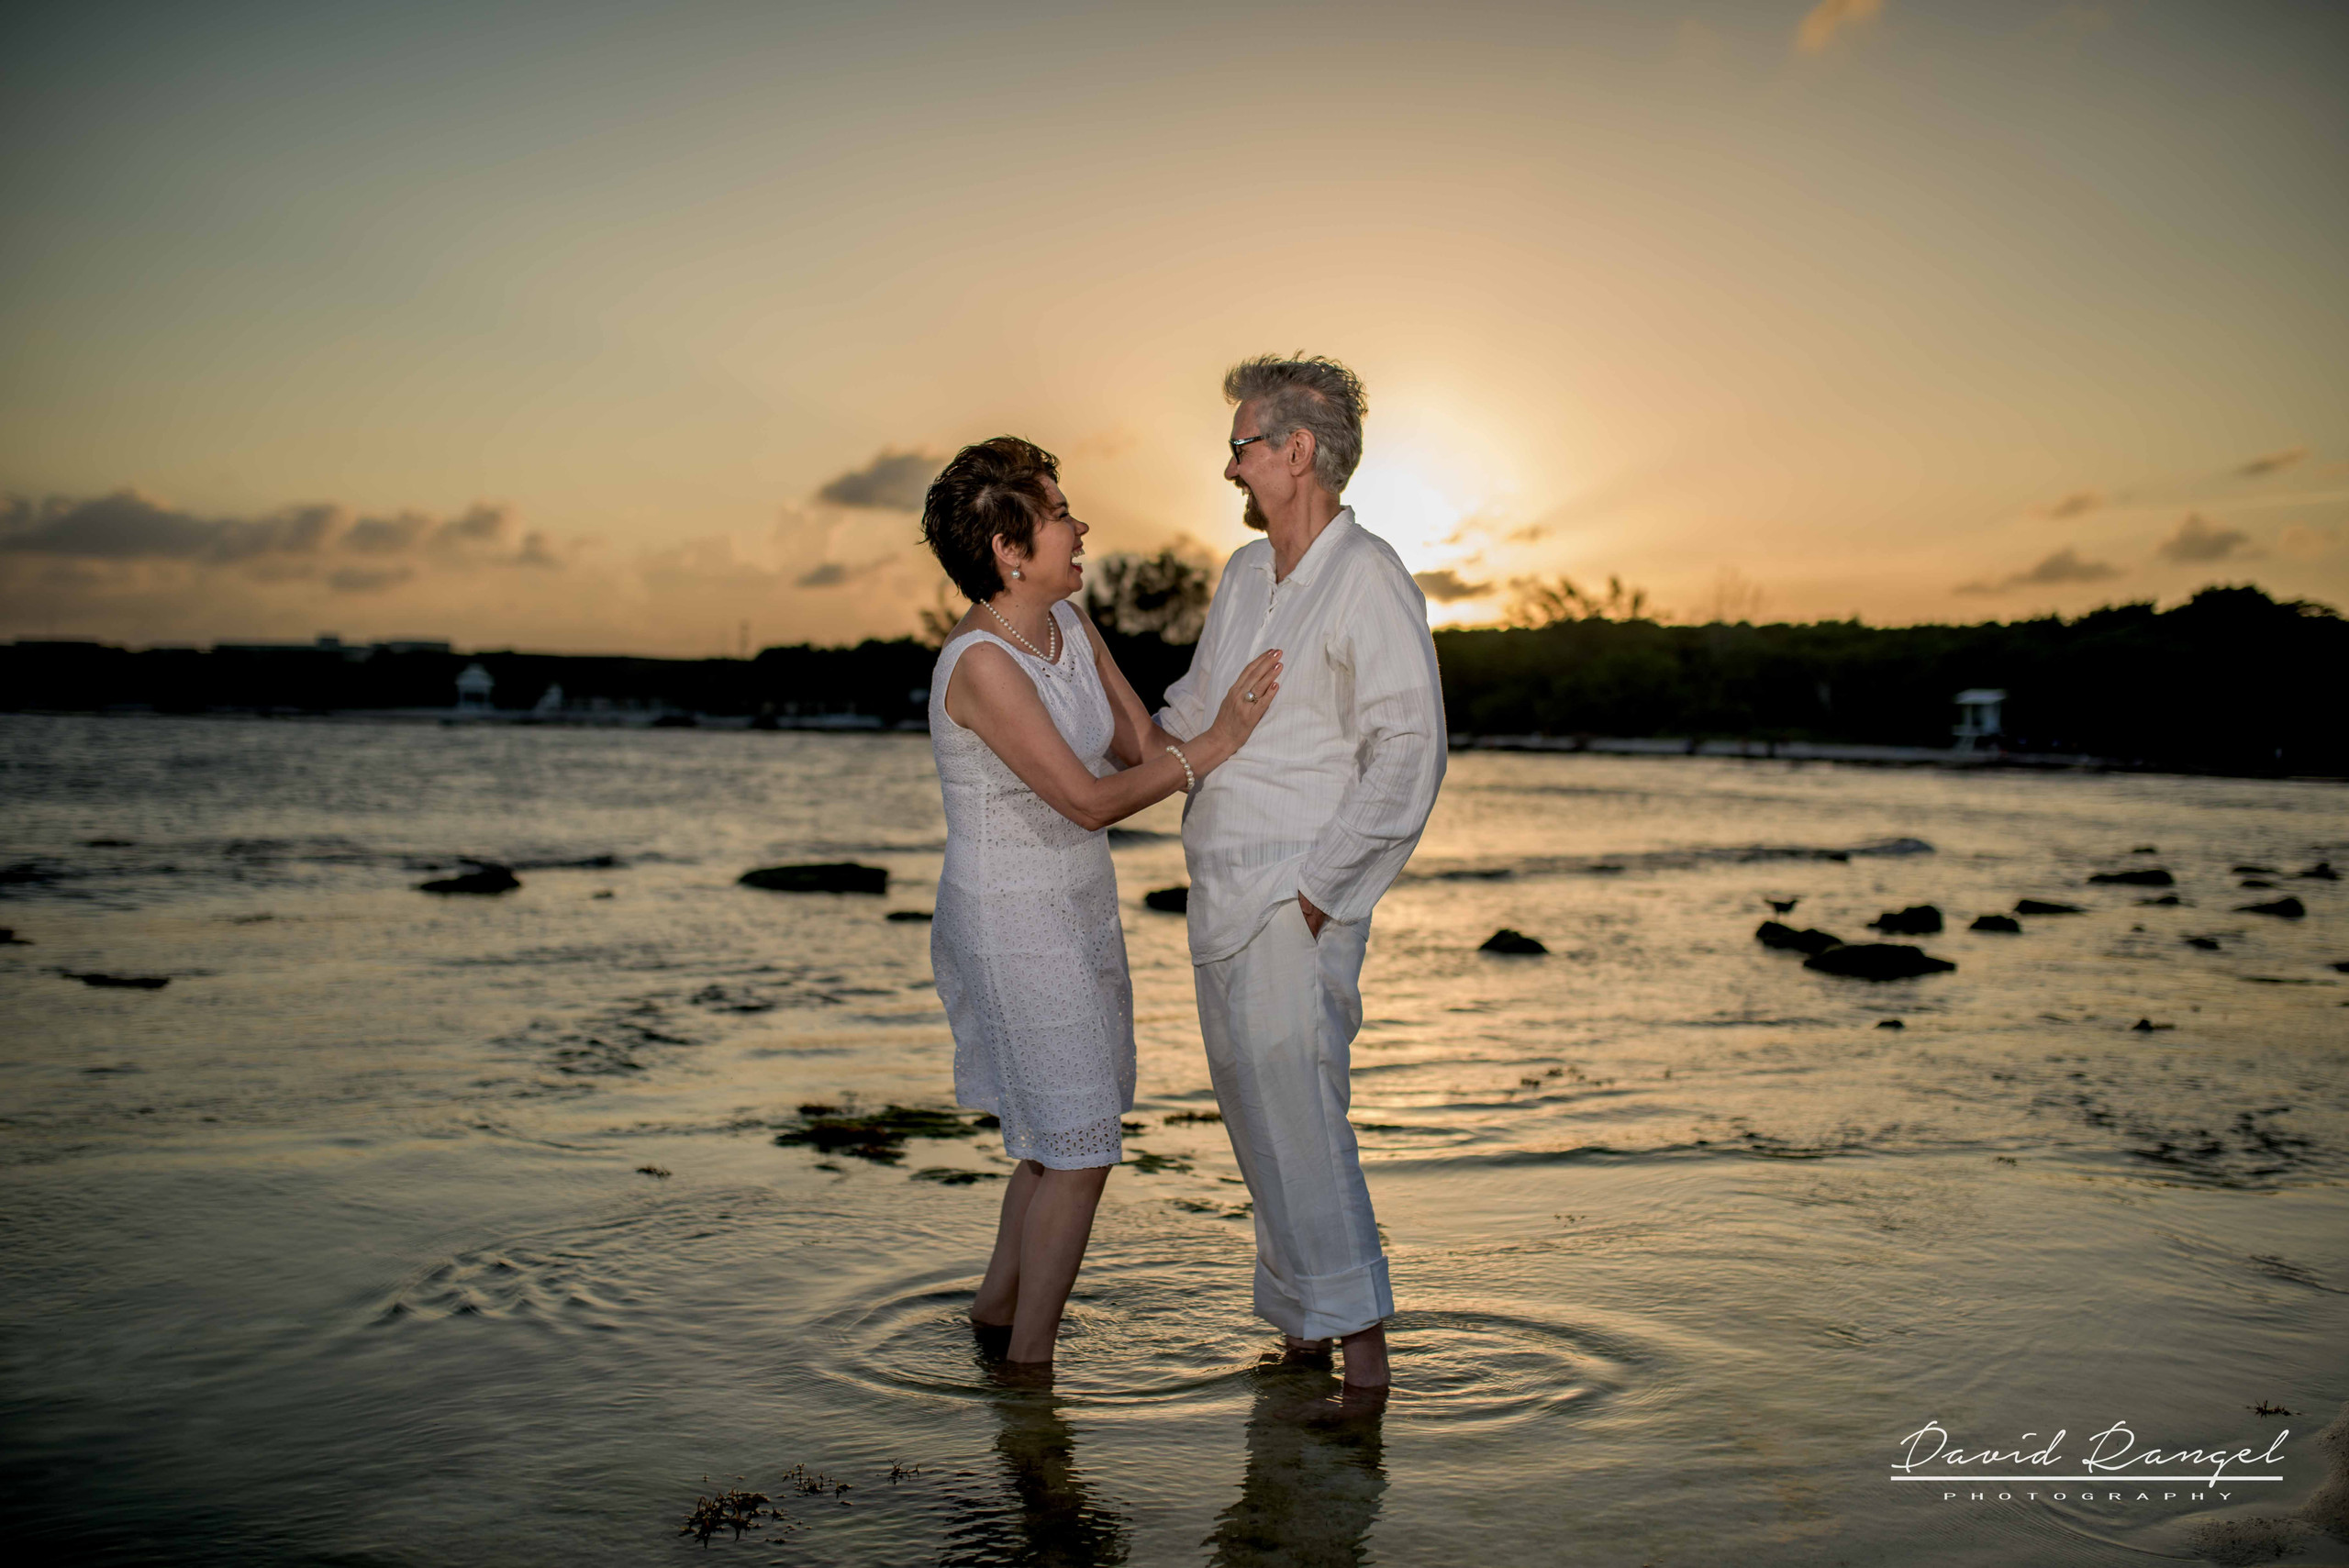 wedding+photographer+in+cancun